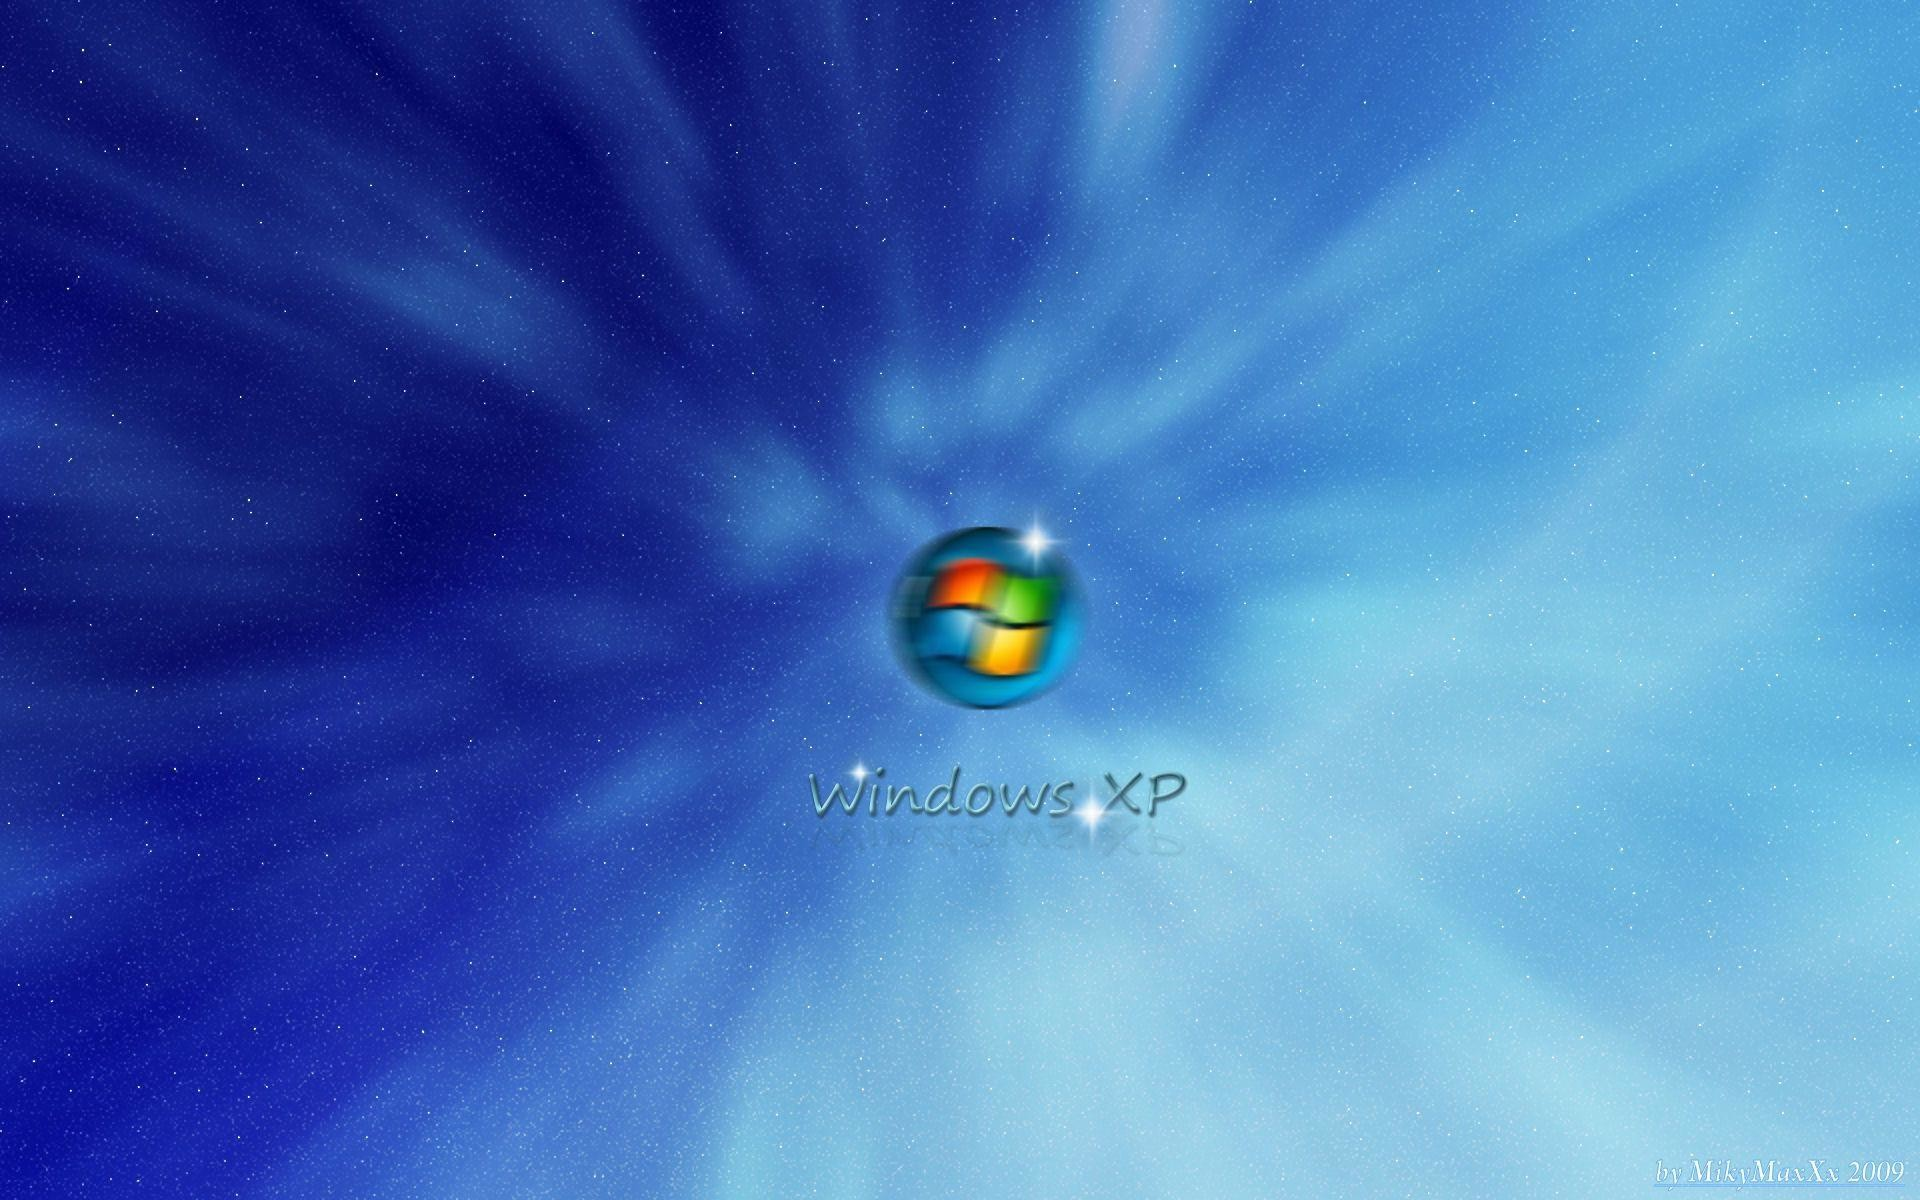 1920x1200 Windows Xp Desktop Wallpaper Hd Background Image 47763 Label .